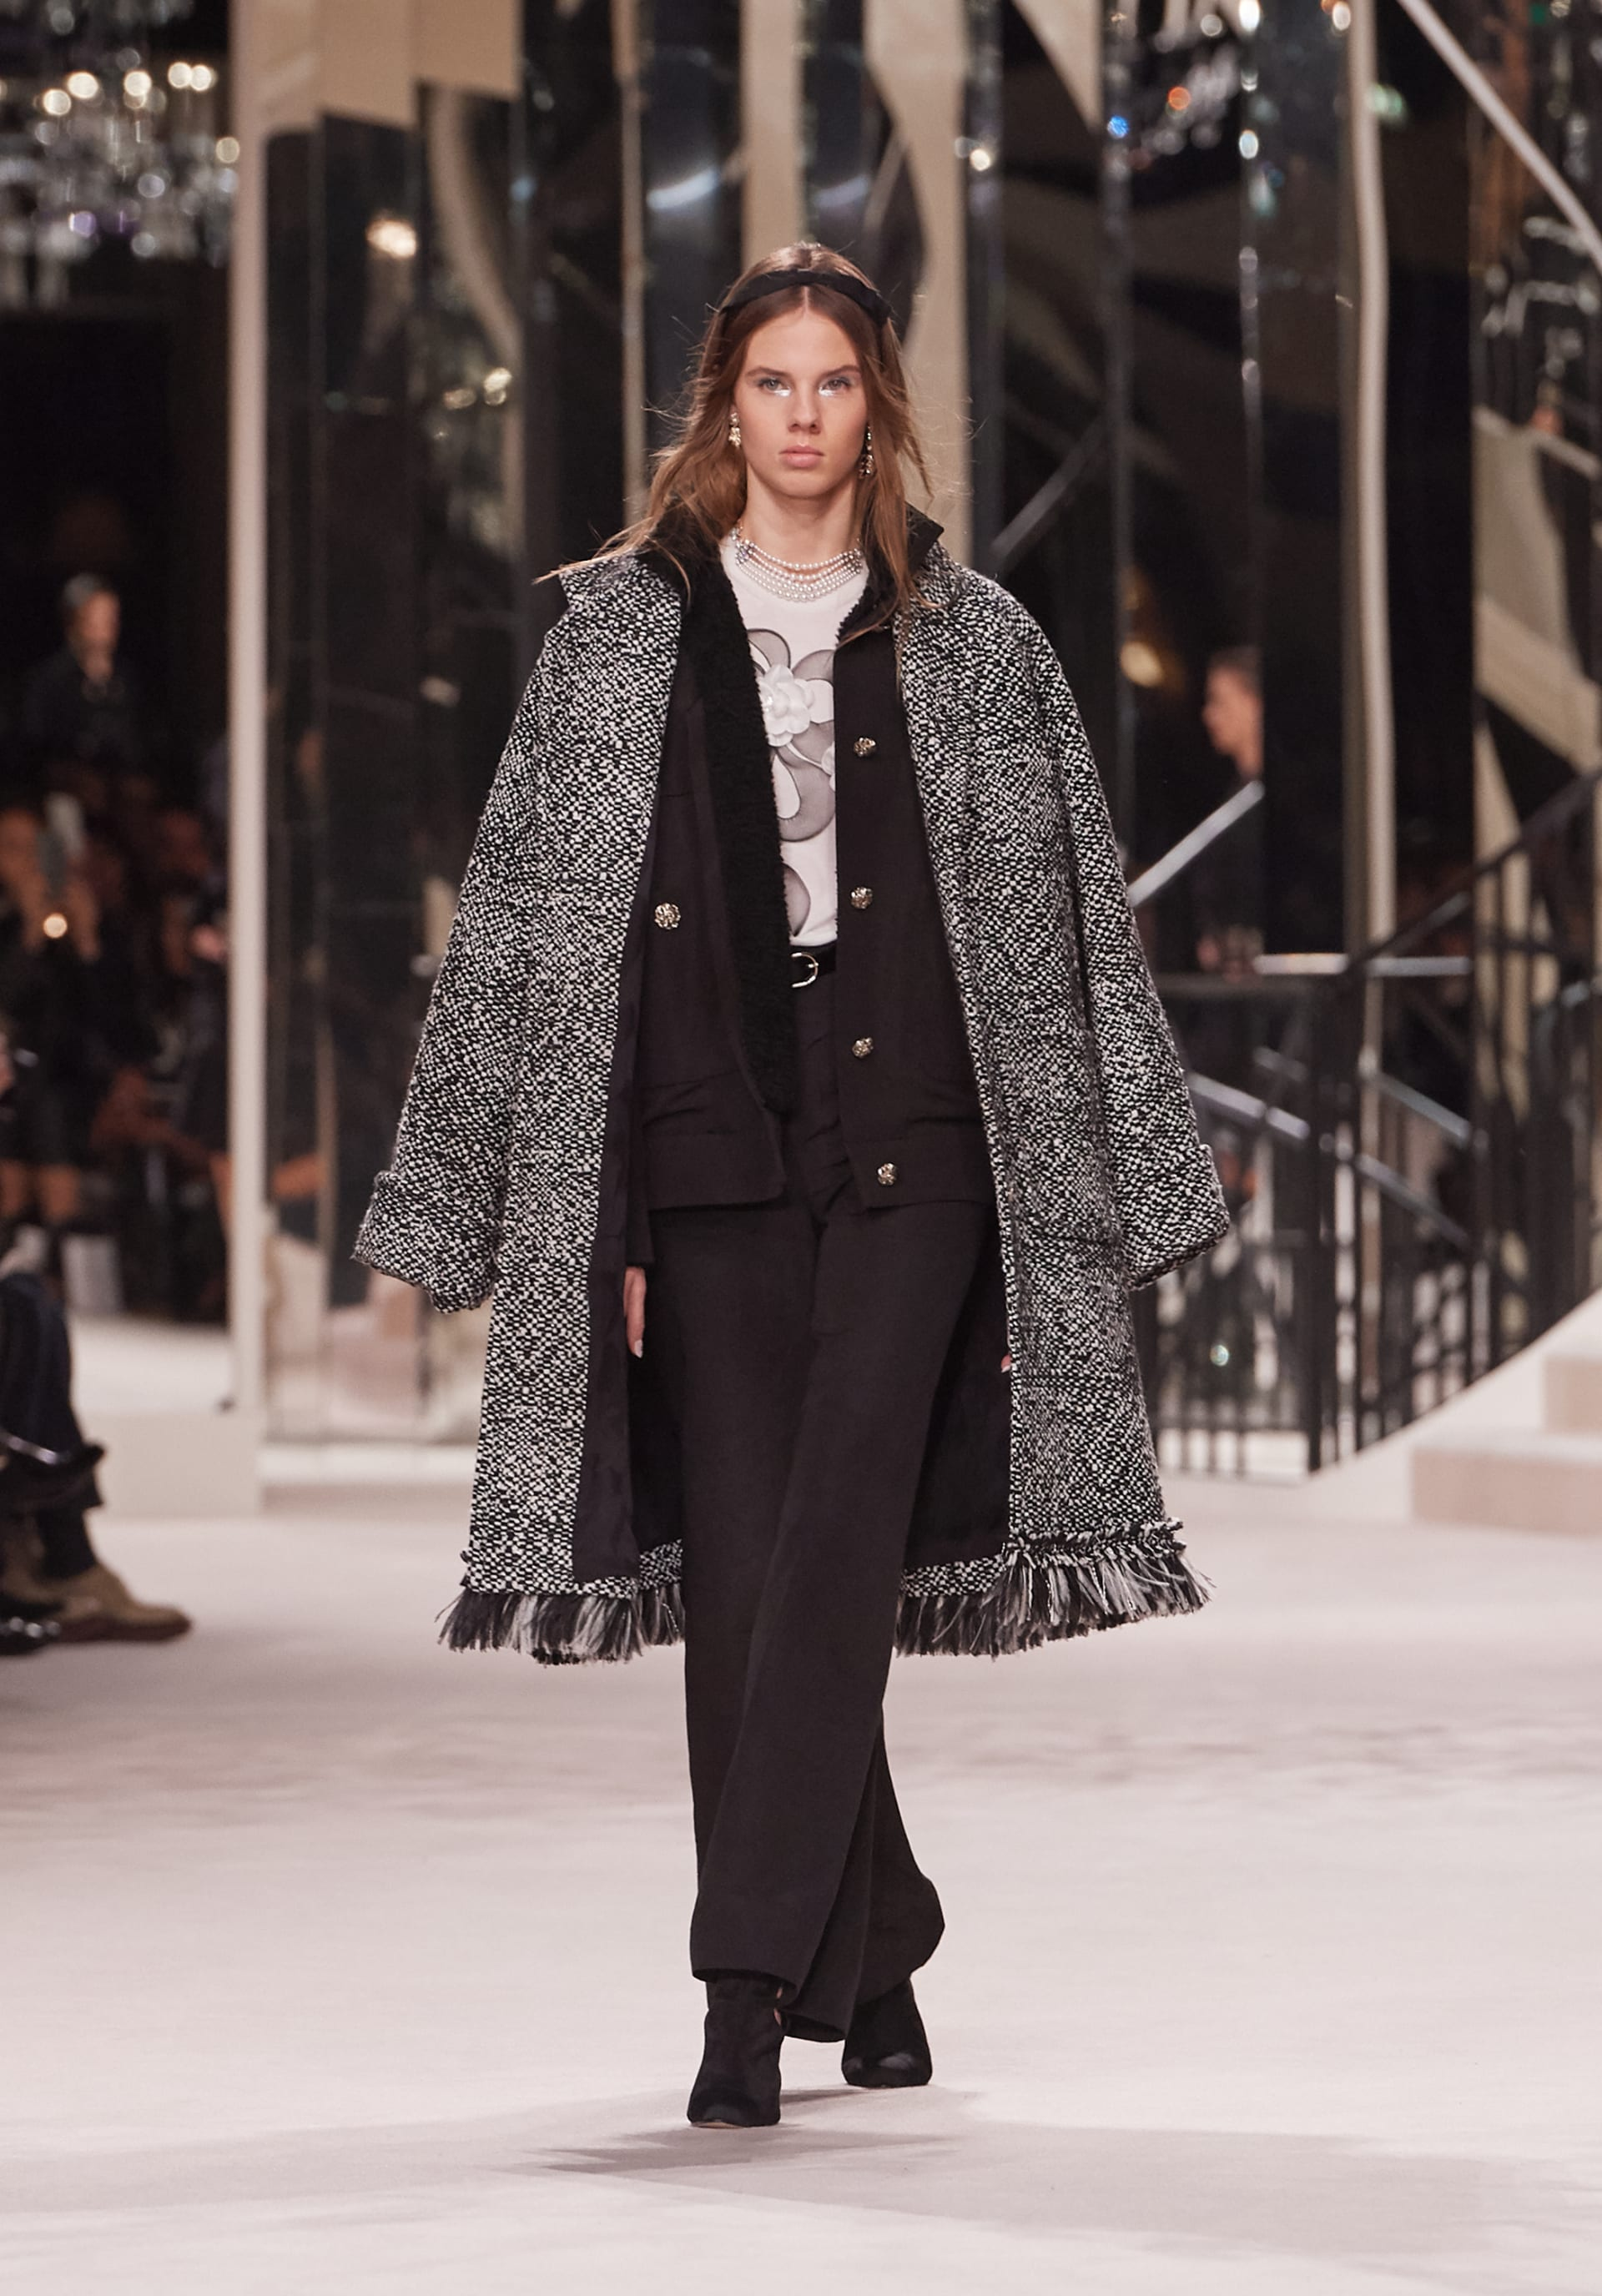 View 1 - Look 7 - Métiers d'Art 2019/20 - see full sized version